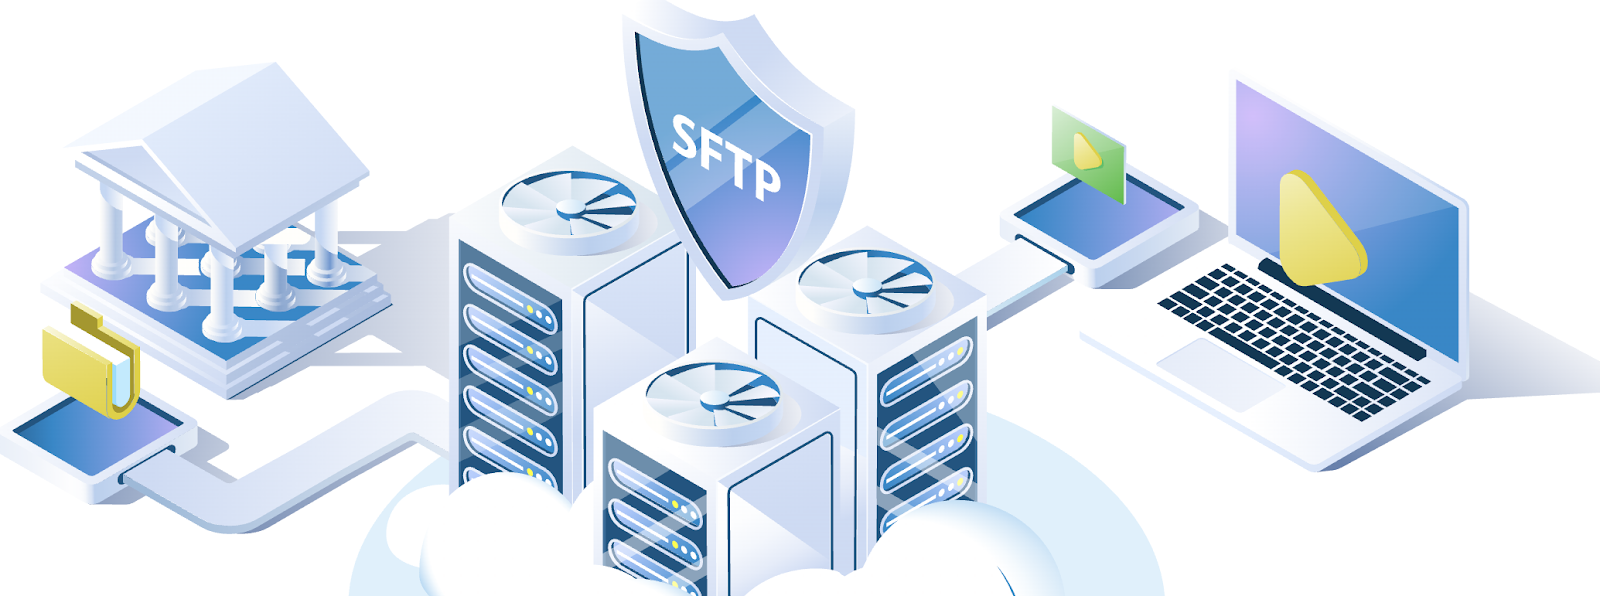 Computers connecting to SFTP servers.